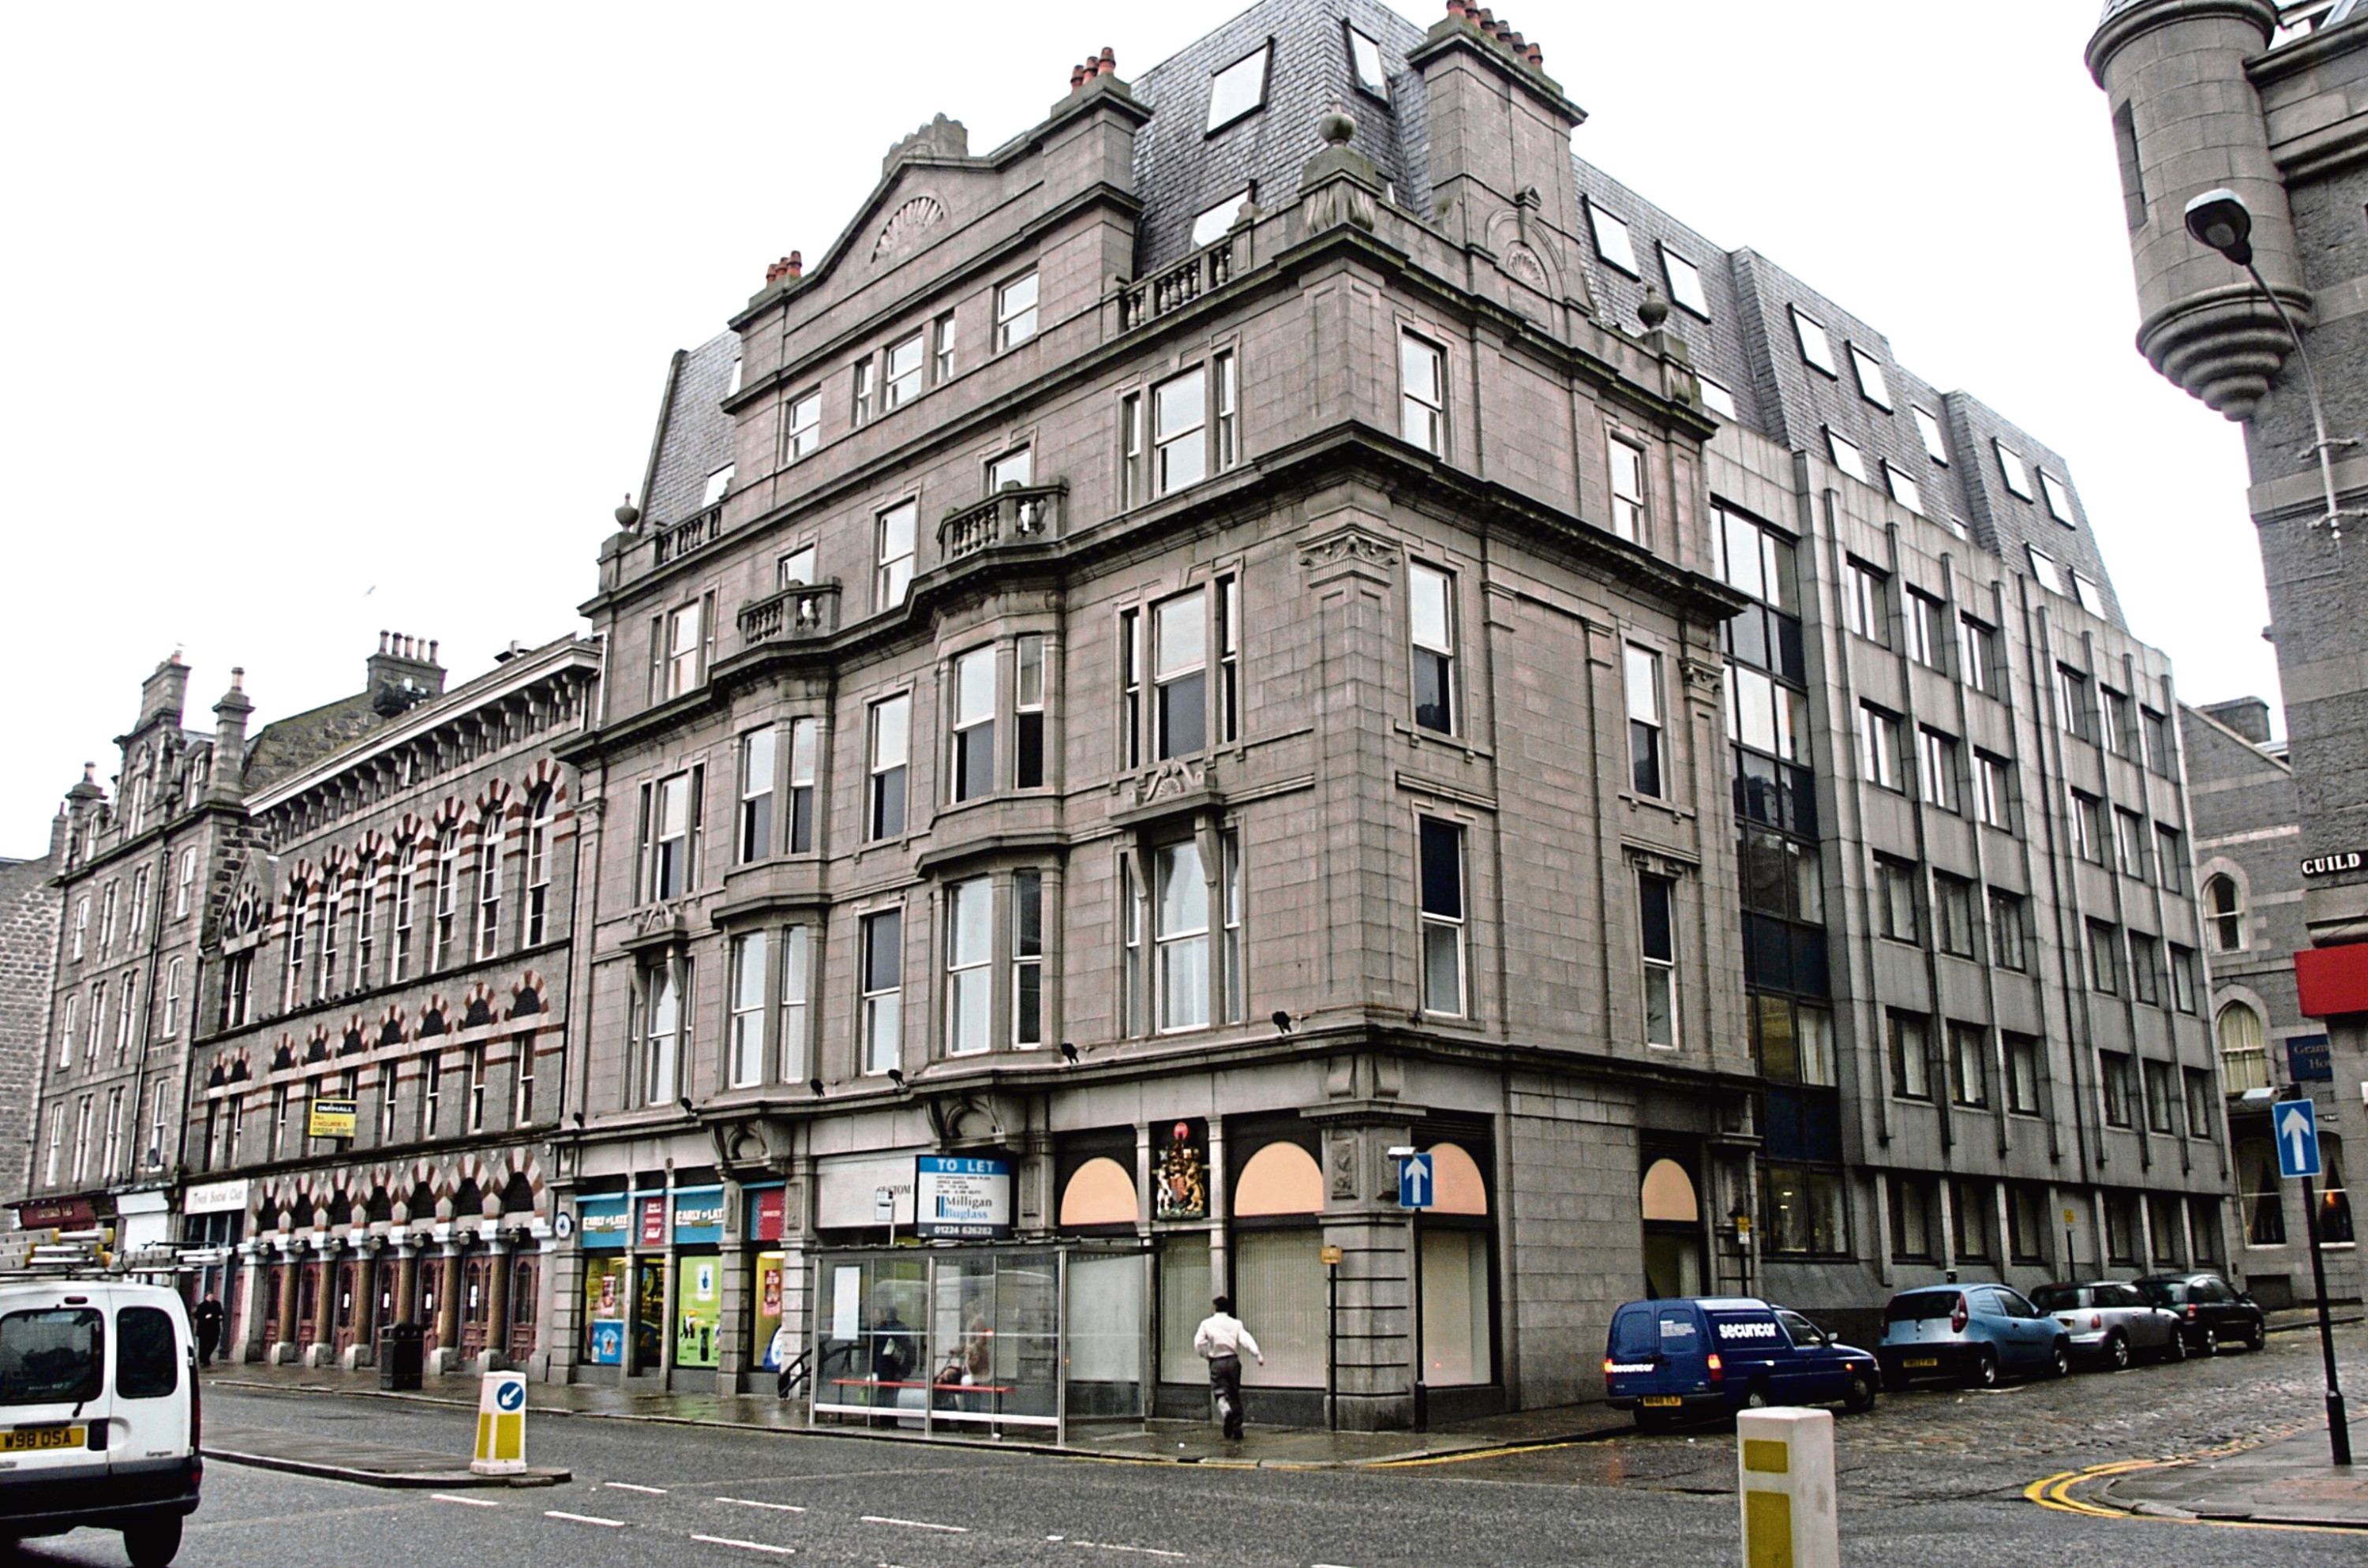 Custom House, where Mandale Construction has applied for permission to build a new 106-bedroom hotel